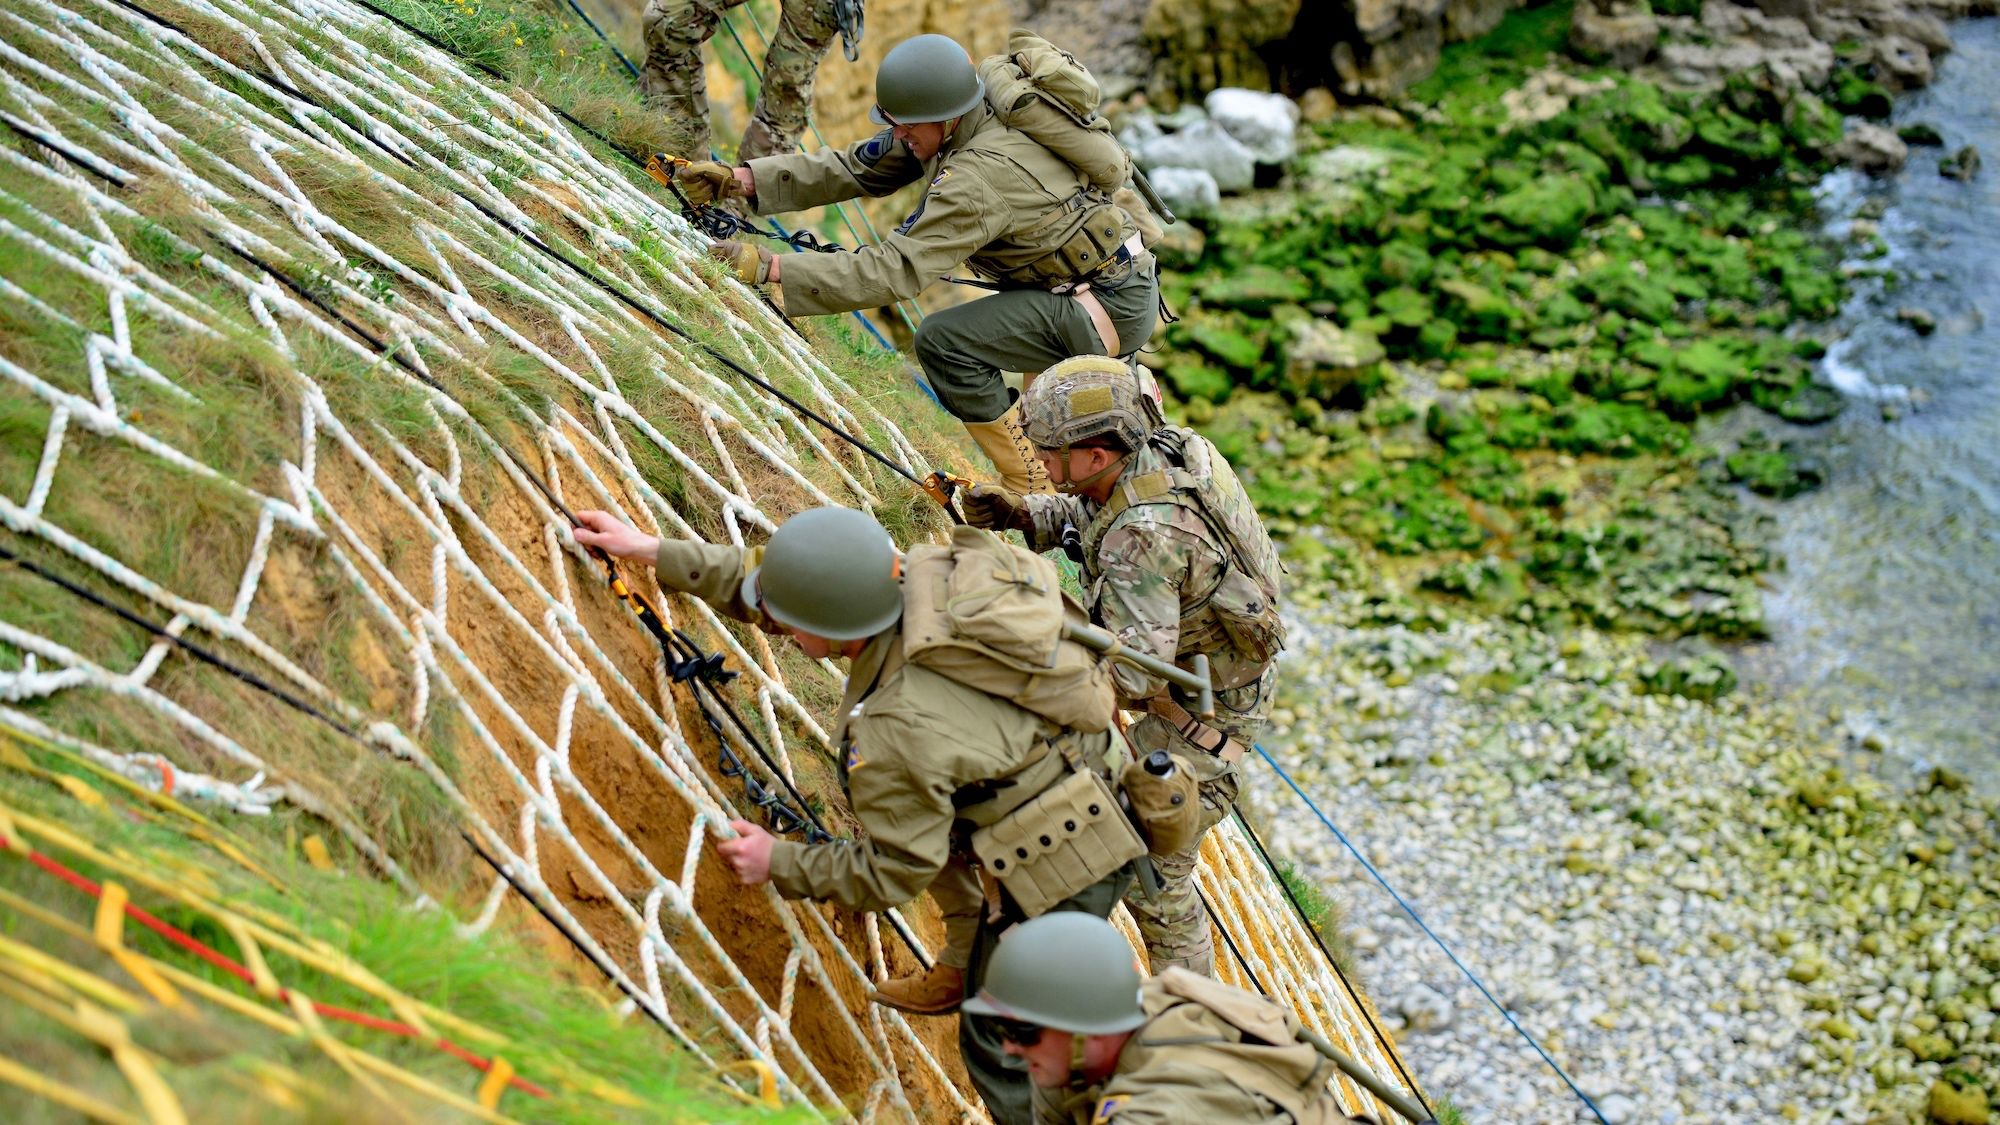 Watch U.S. Army Rangers Scale The Same Cliff Their Forebears Did on D-Day